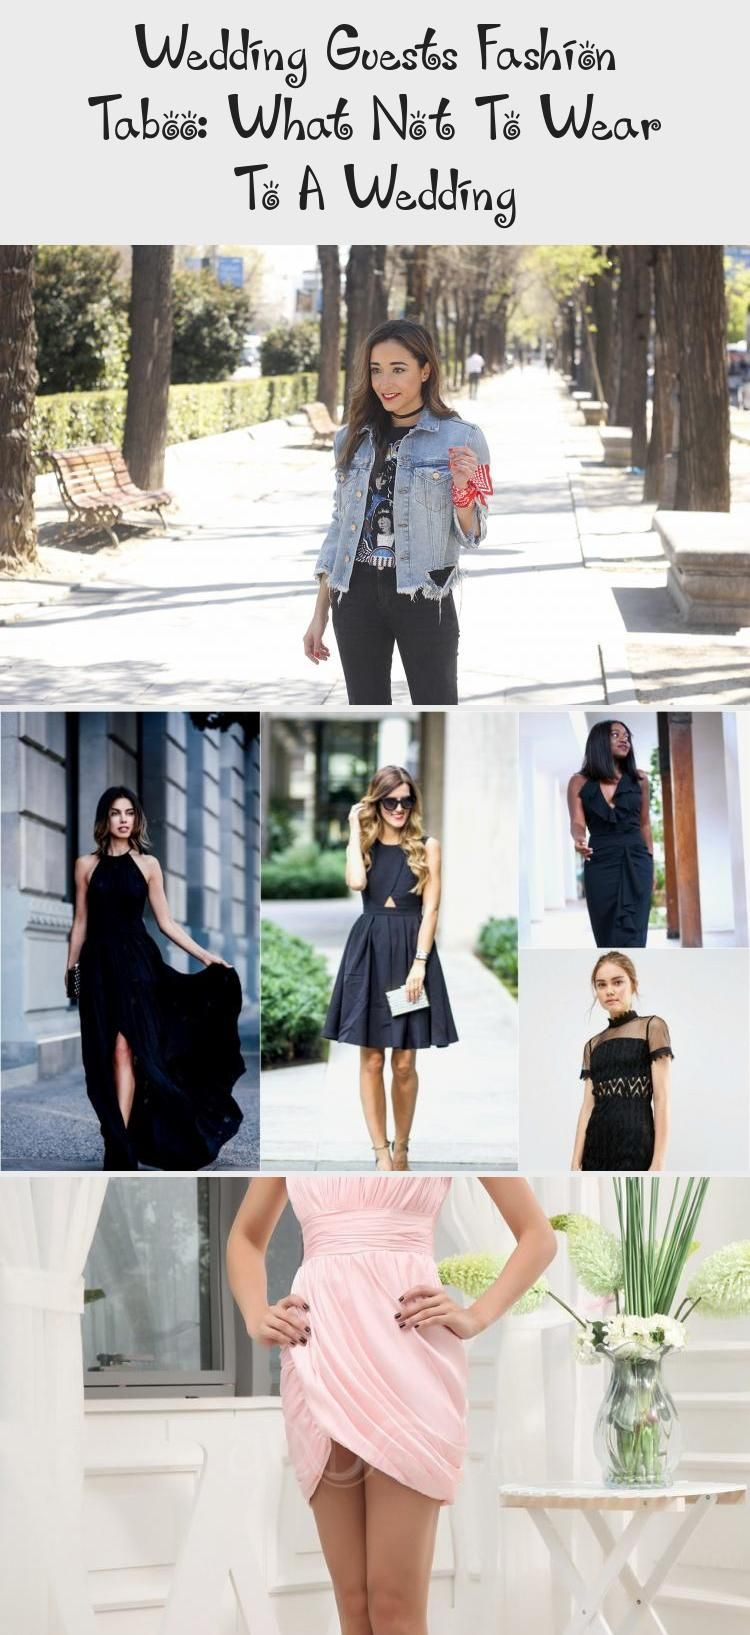 Wedding Guests Fashion Taboo What Not To Wear To A Wedding Pinokyo In 2020 Super Short Dress Wedding Guest Style Black Party Dresses